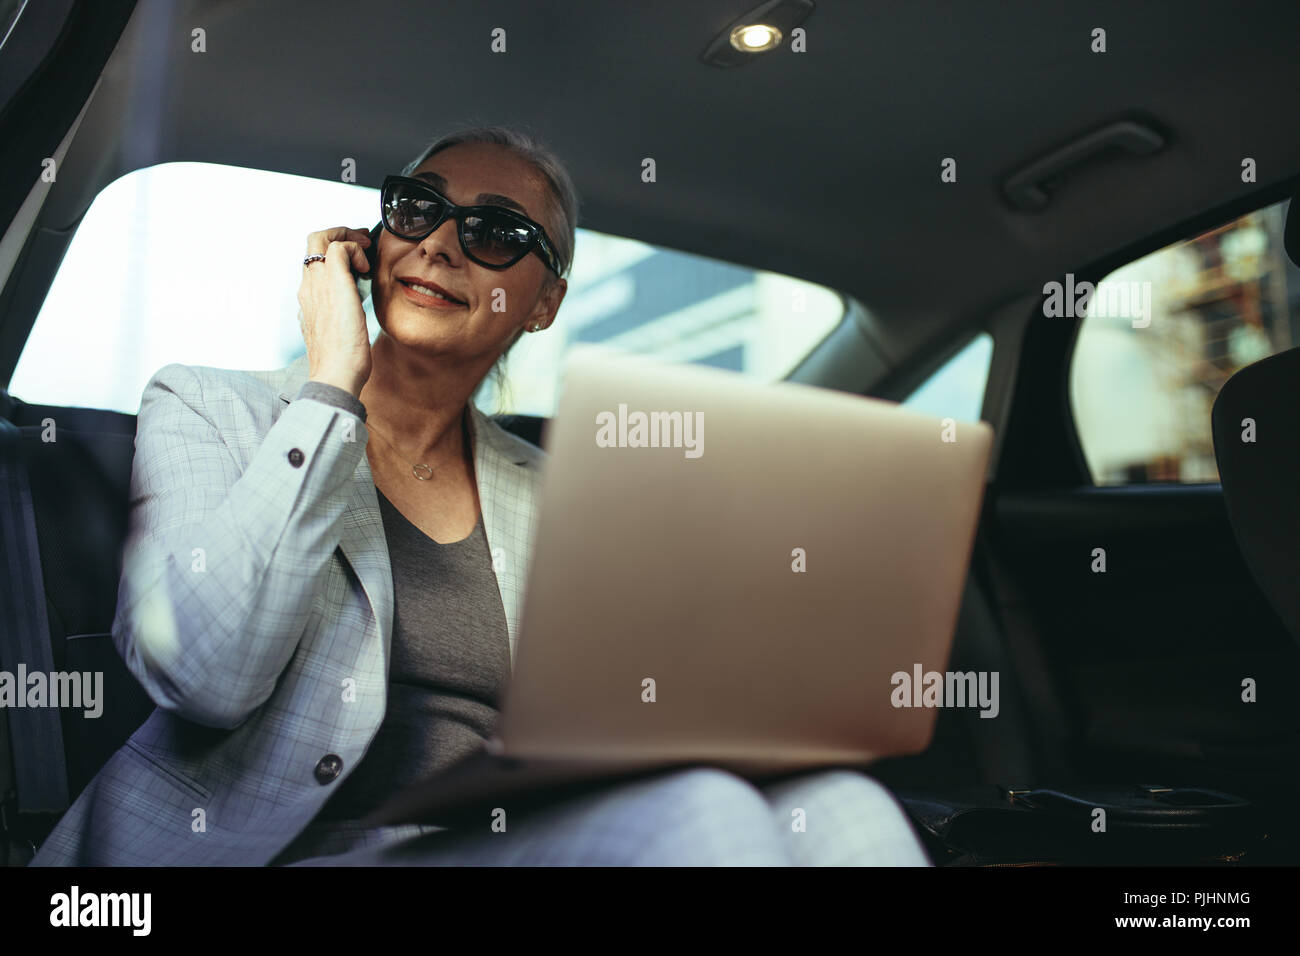 Female entrepreneur travelling to office in a luxurious car sitting on backseat with laptop and looking outside the window while talking on phone . Ma - Stock Image